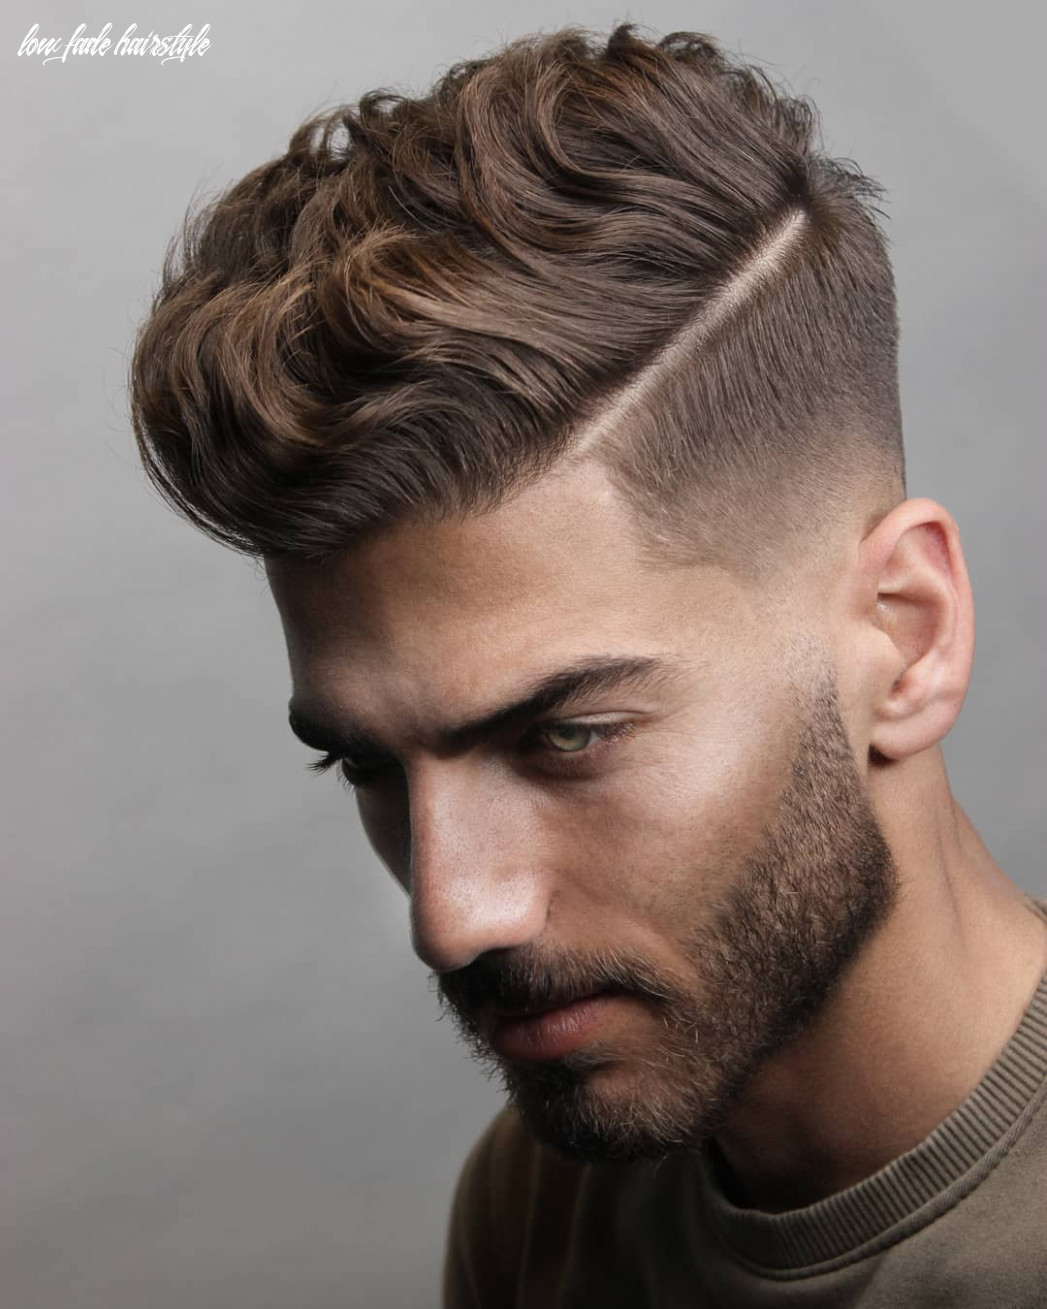 12 short on sides long on top haircuts for men | man haircuts low fade hairstyle